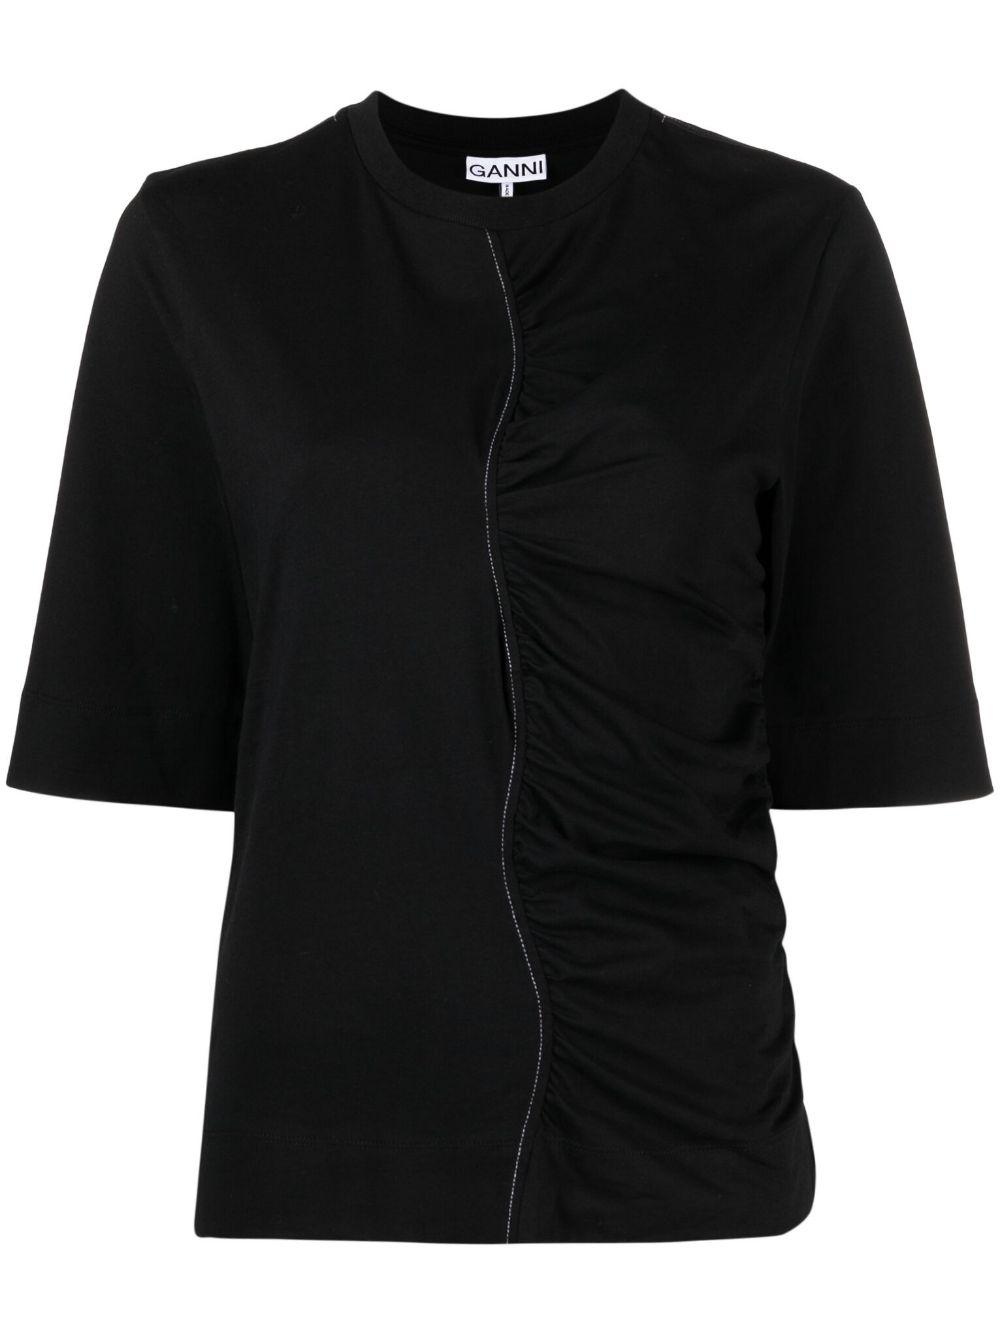 Cotton Jersey Half Ruched Tee